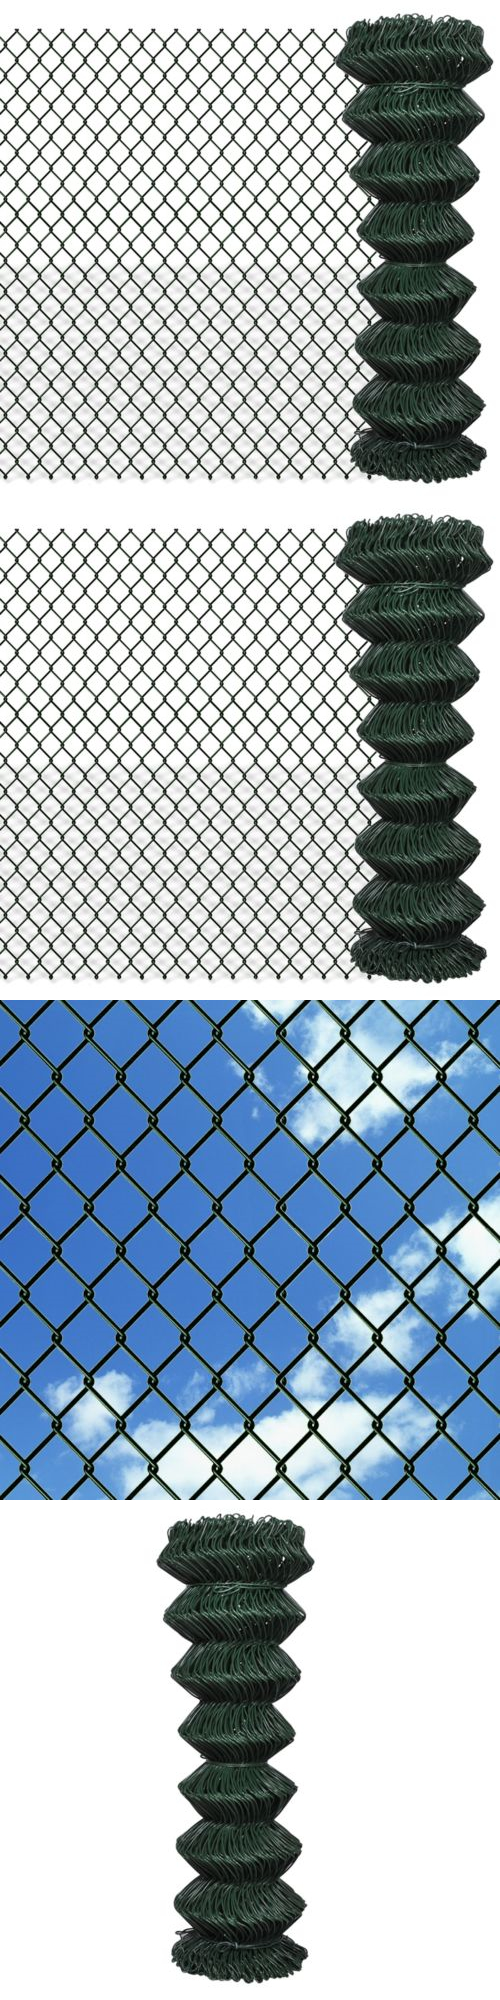 Other Garden Fencing 177033: Patio Outdoor 4 1 X 82 Chain Link Fence ...